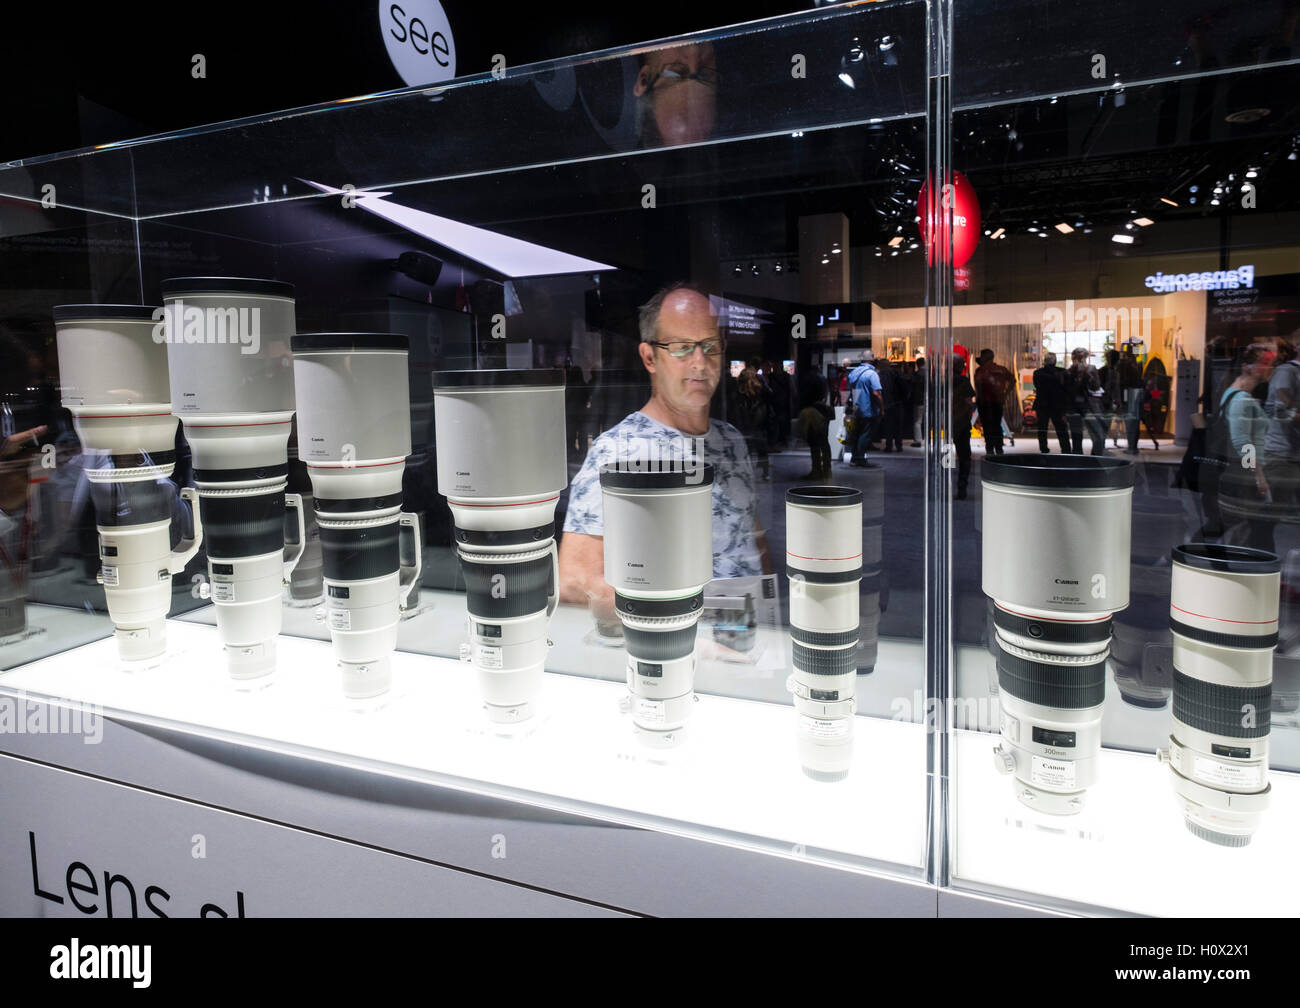 Display of Canon telephoto lenses at Photokina trade fair in Cologne, Germany , 2016 - Stock Image